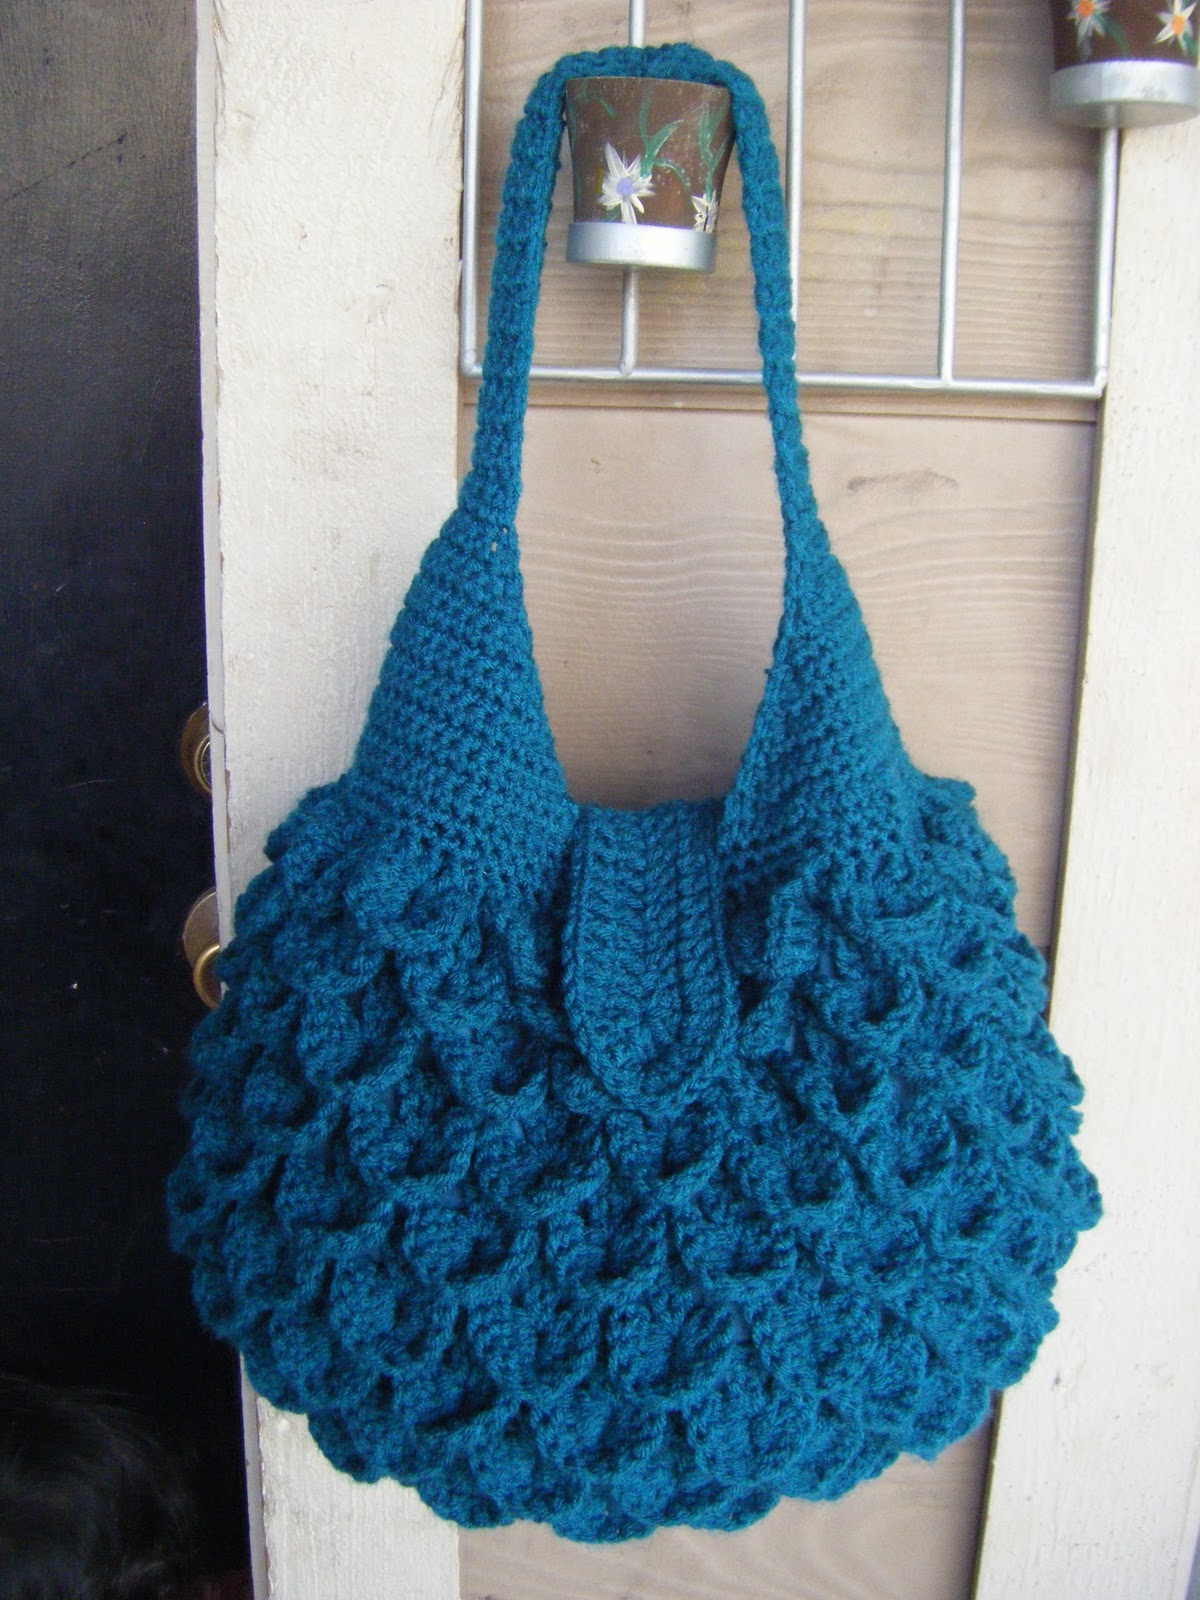 Free Crochet Patterns For Purses Bags : FREE THREAD CROCHET PURSE PATTERNS ? Easy Crochet Patterns